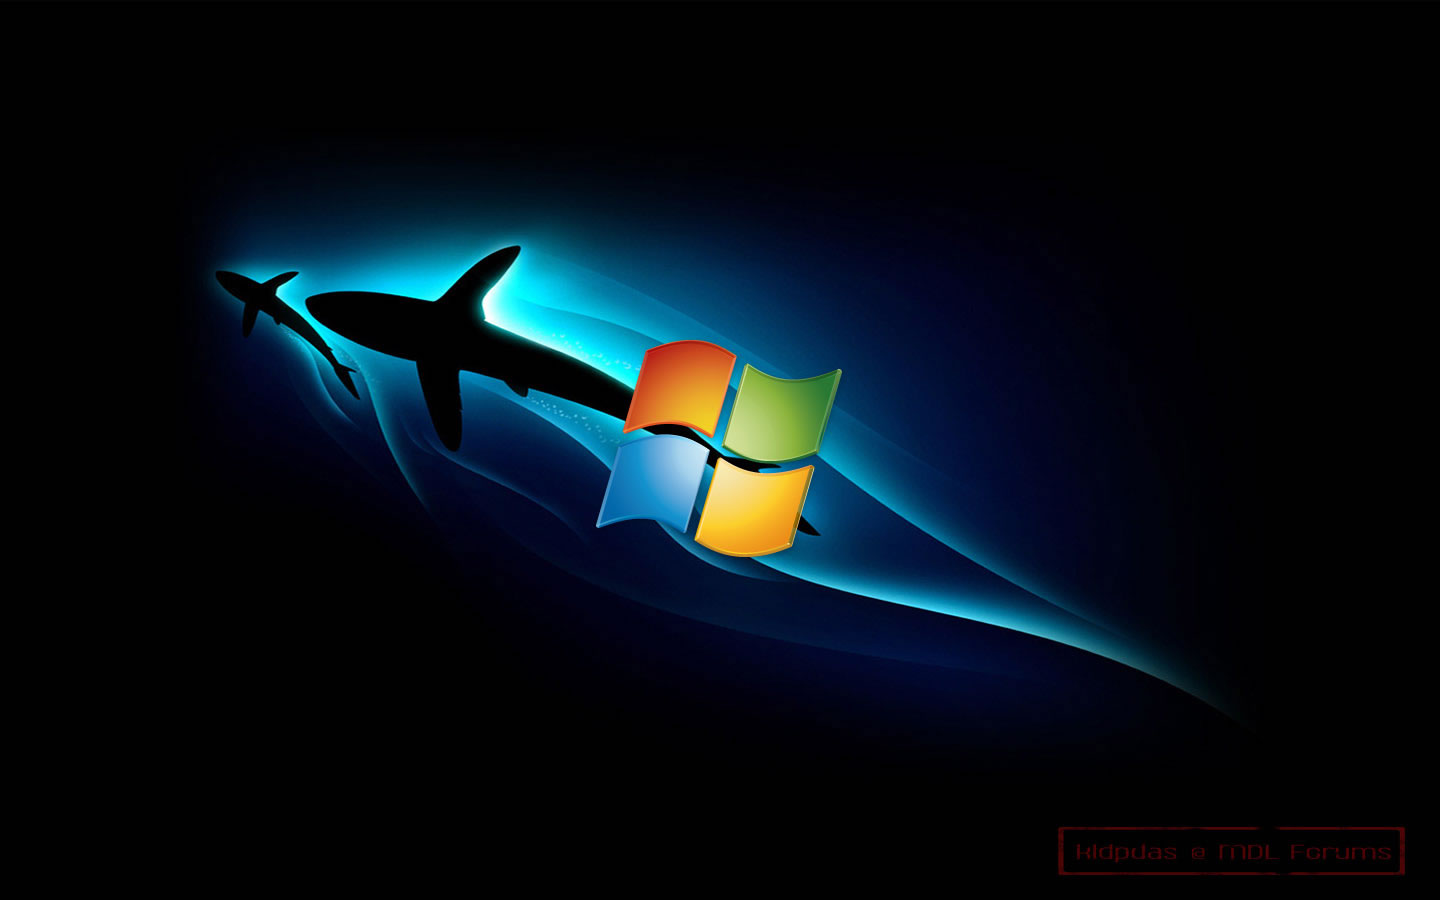 88 Wonderful Windows 8 Wallpapers WindowsAppStorm 1440x900